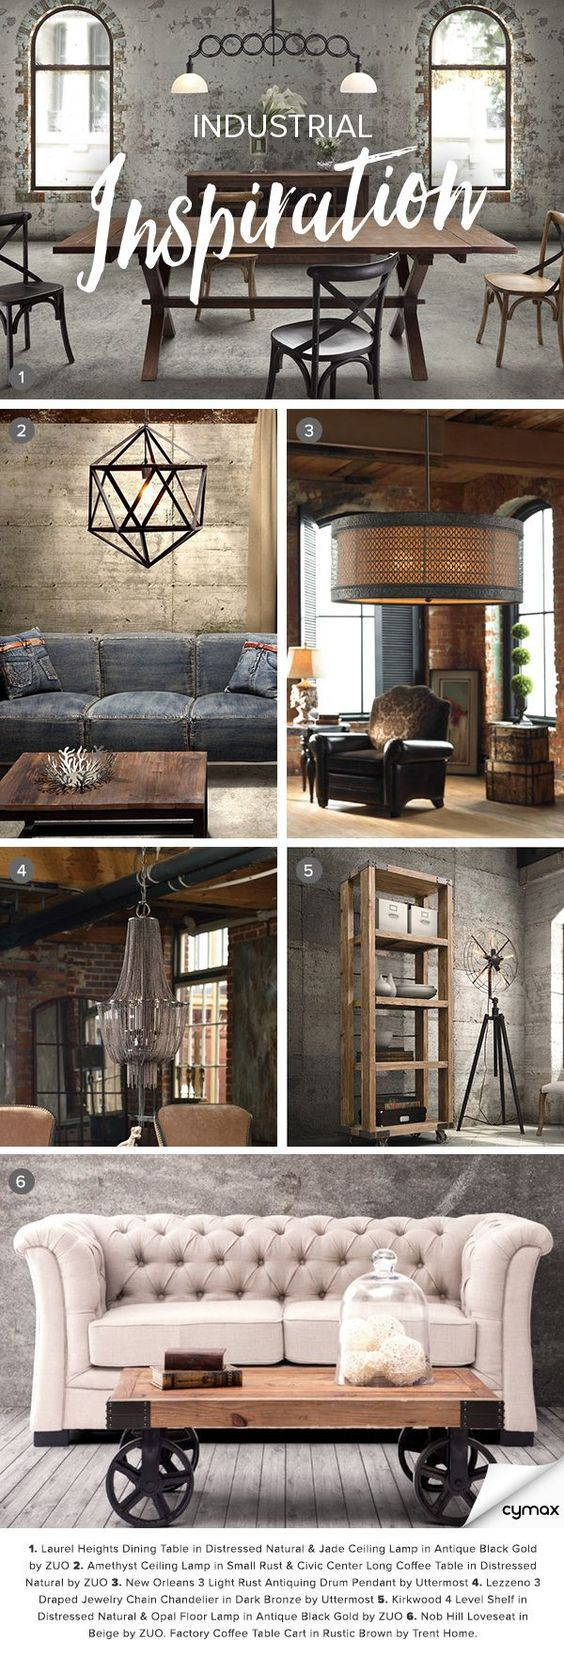 How to Achieve an Industrial Style | Guinea fowl, White wash brick ...